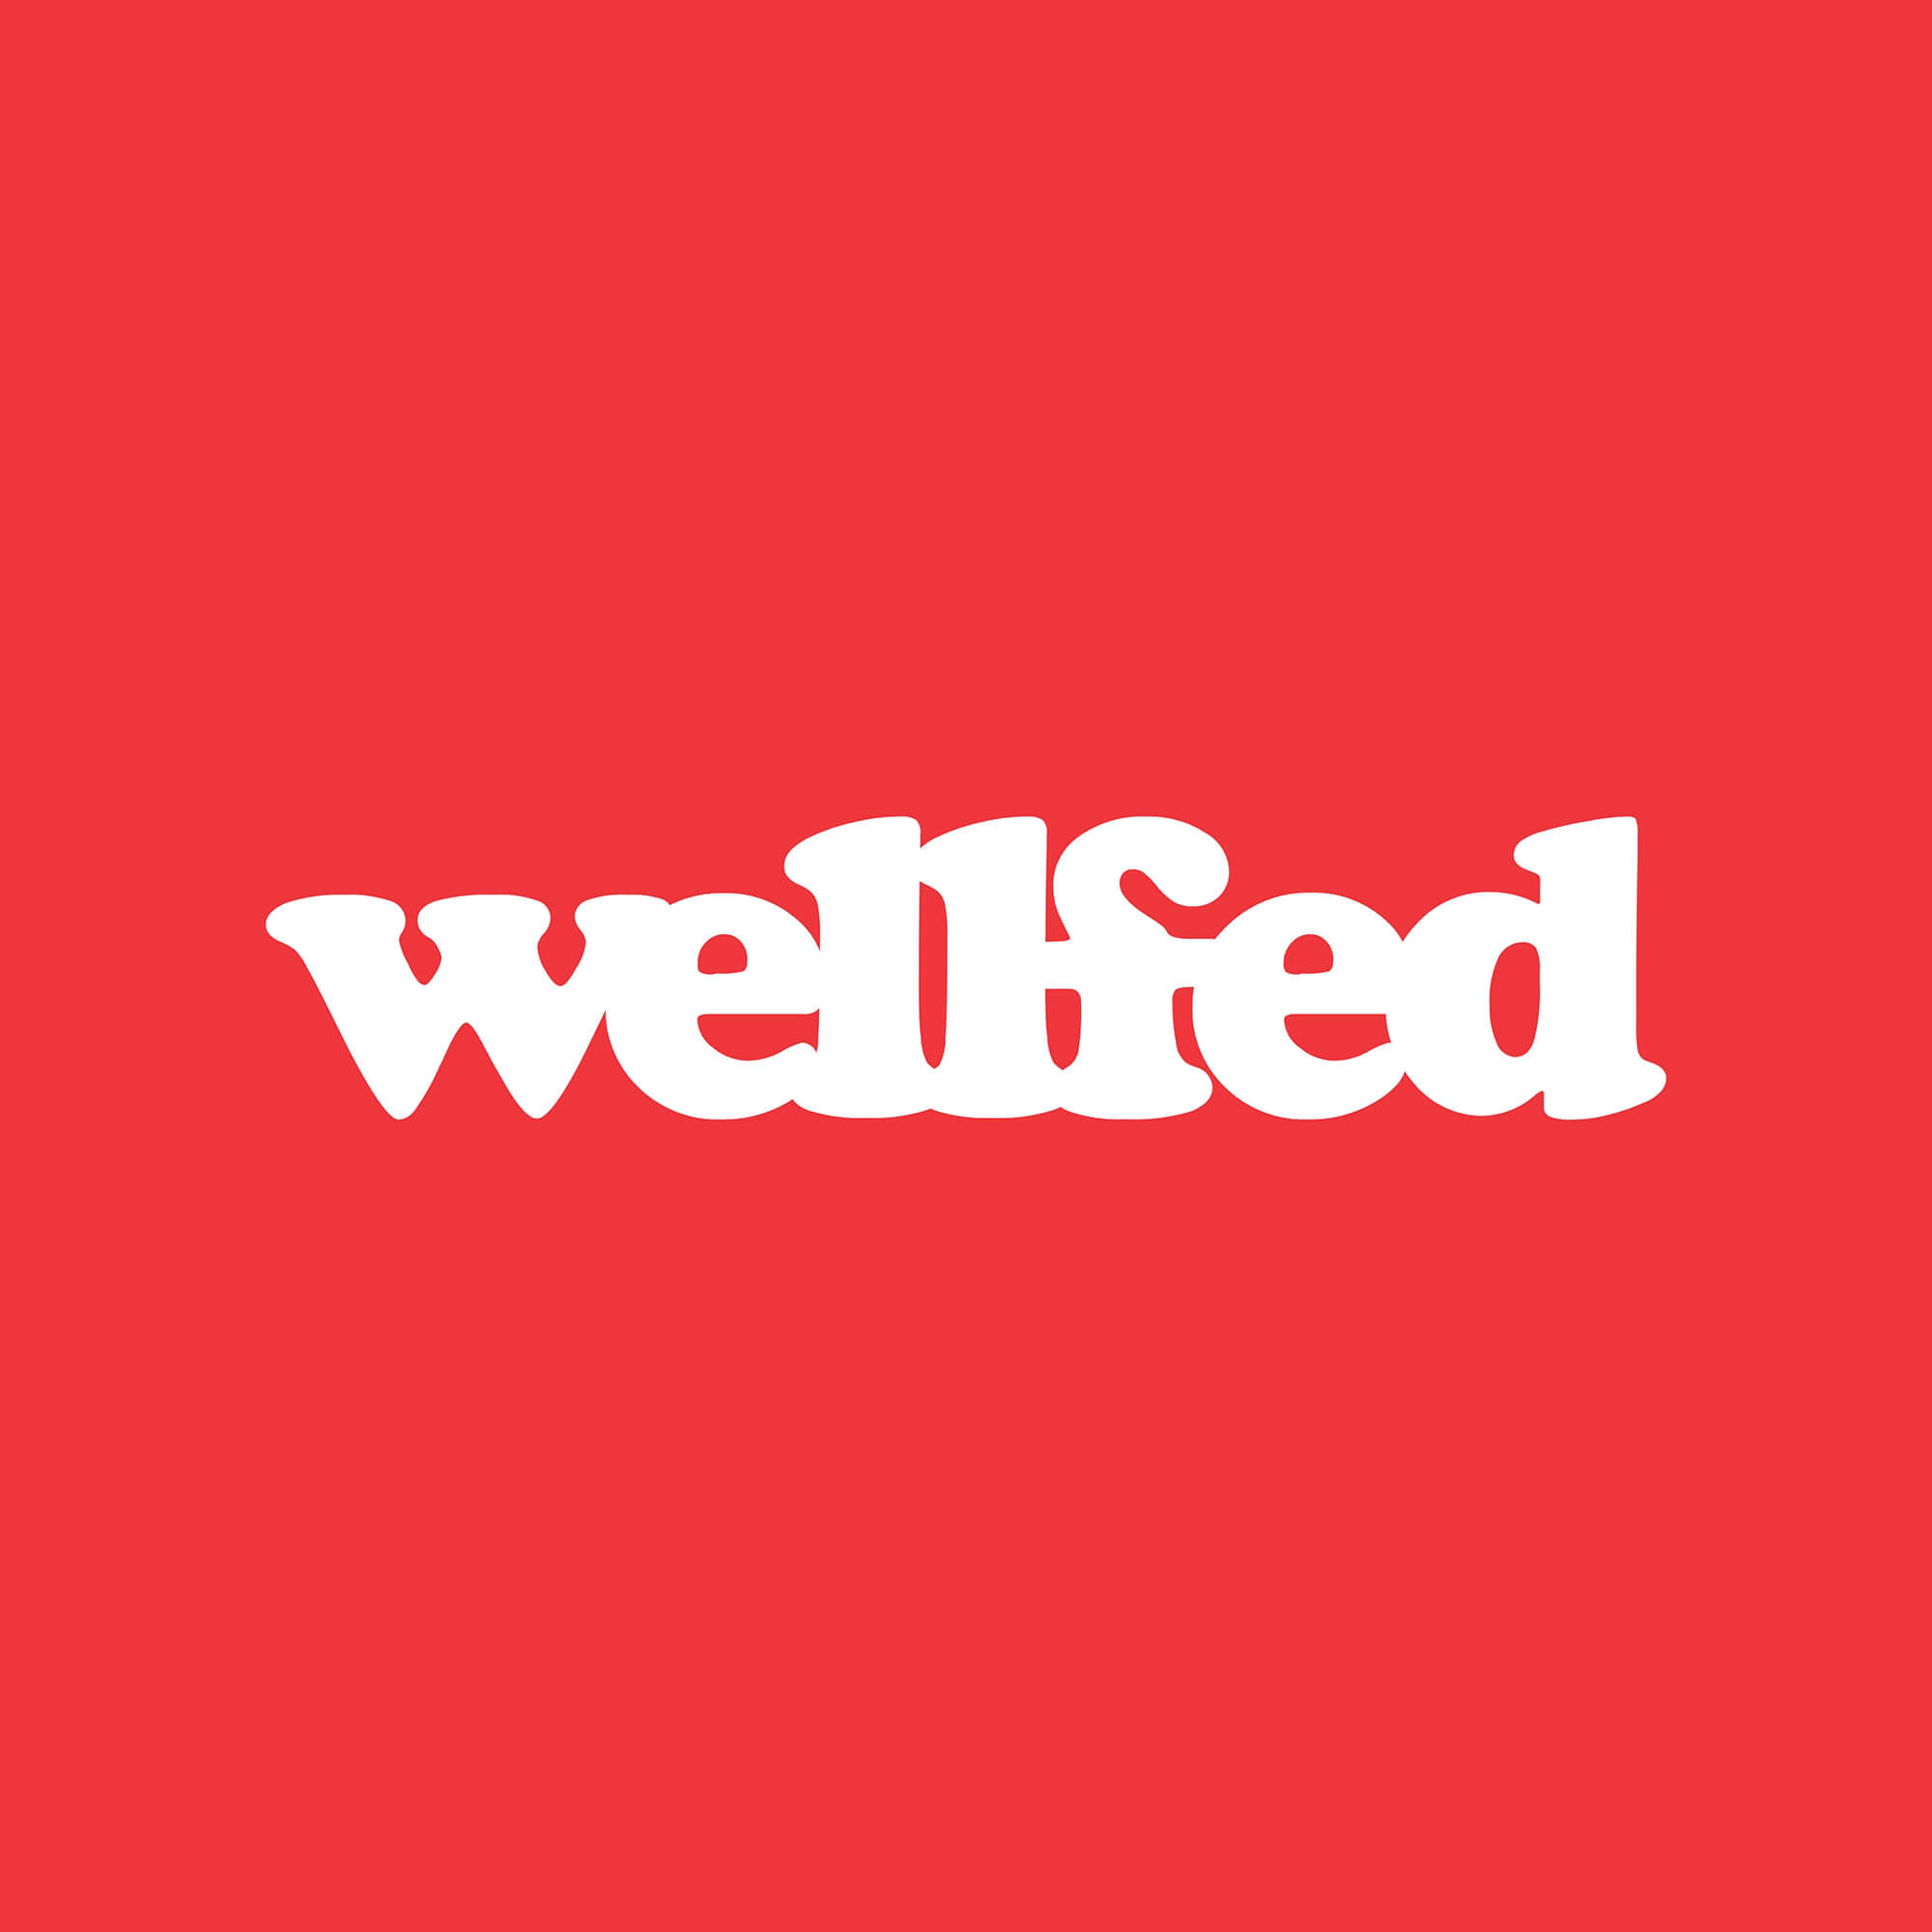 Wellfed Brand Design Logo Red